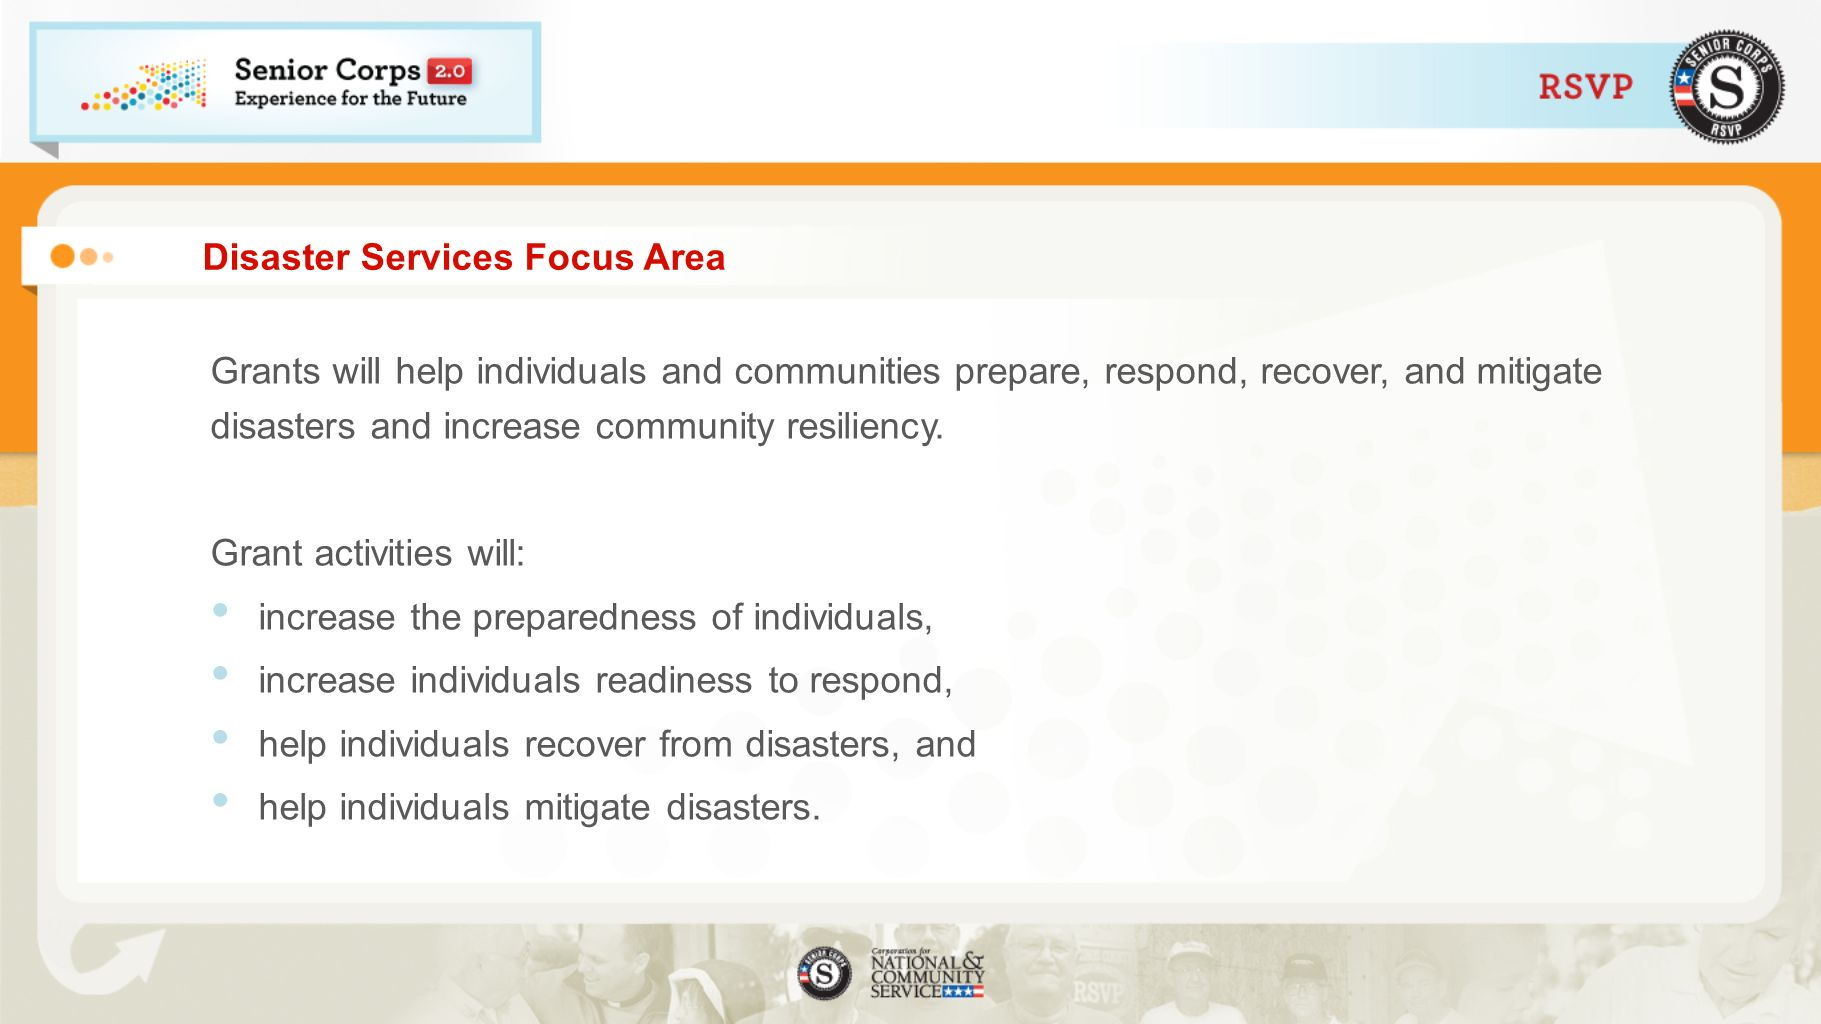 Disaster Services Focus Area Grants will help individuals and communities prepare, respond, recover, and mitigate disasters and increase community resiliency.